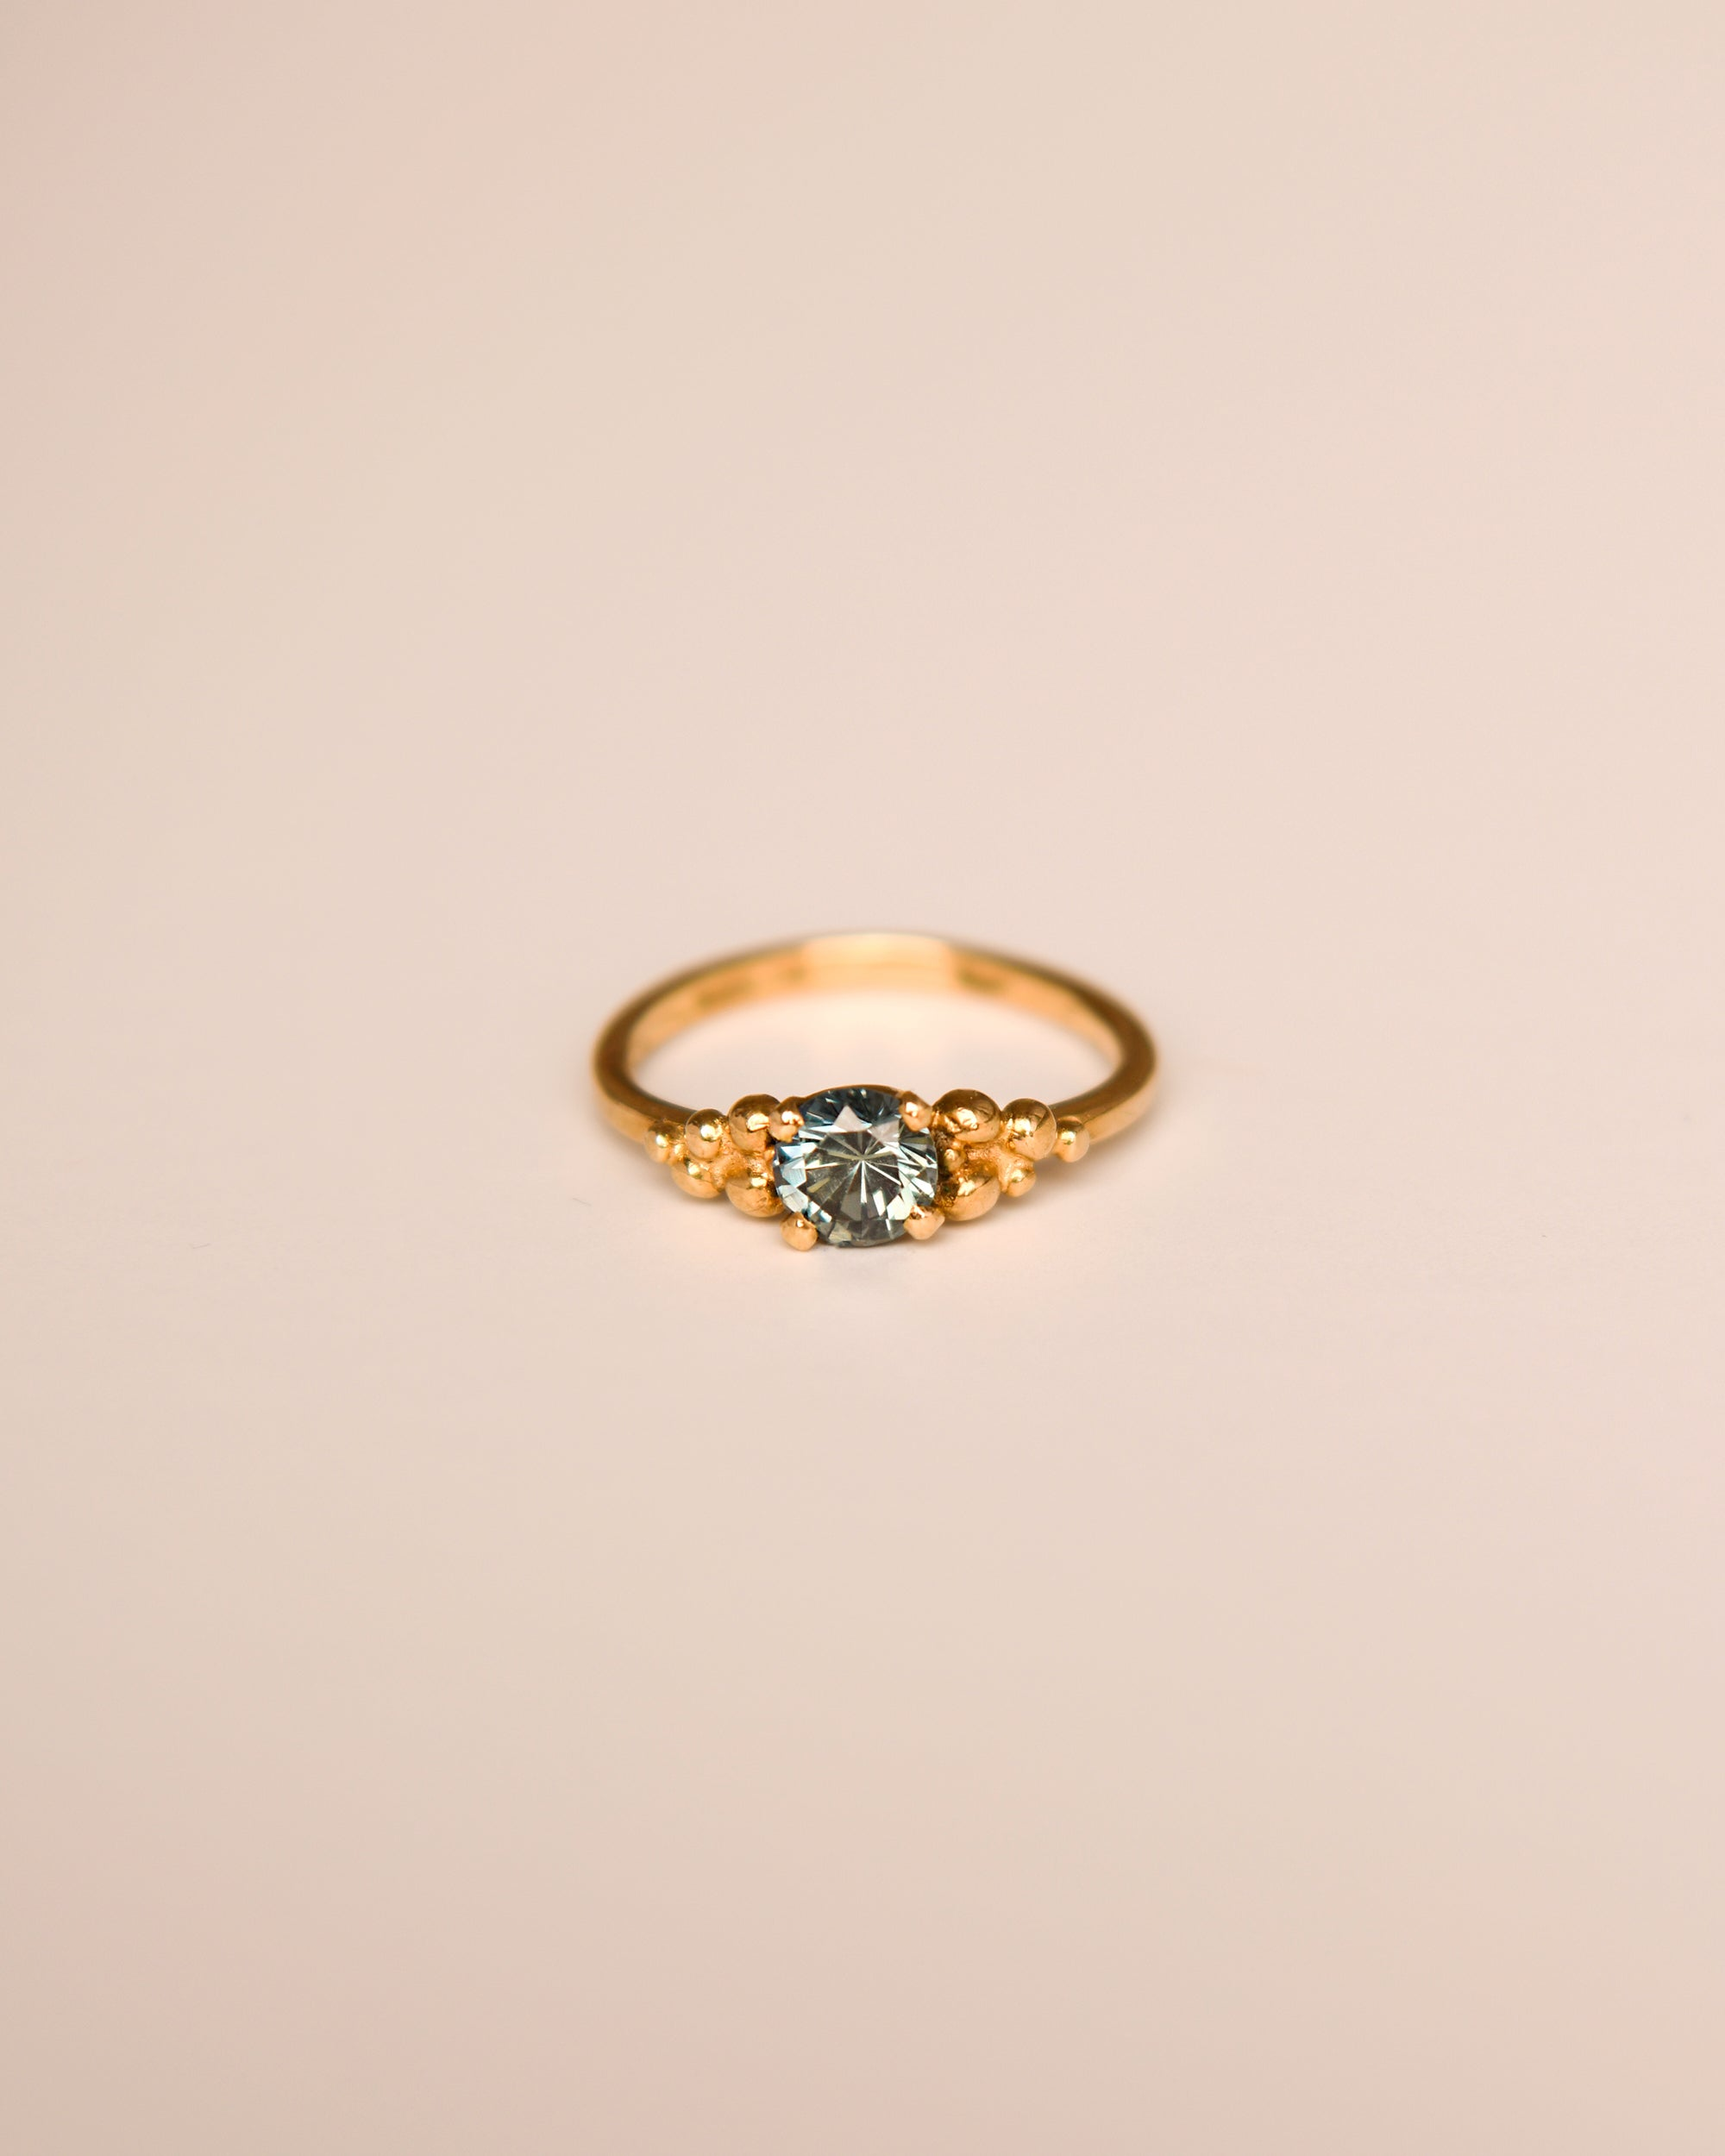 Image of Michelle 9ct Gold Vintage Topaz Ring